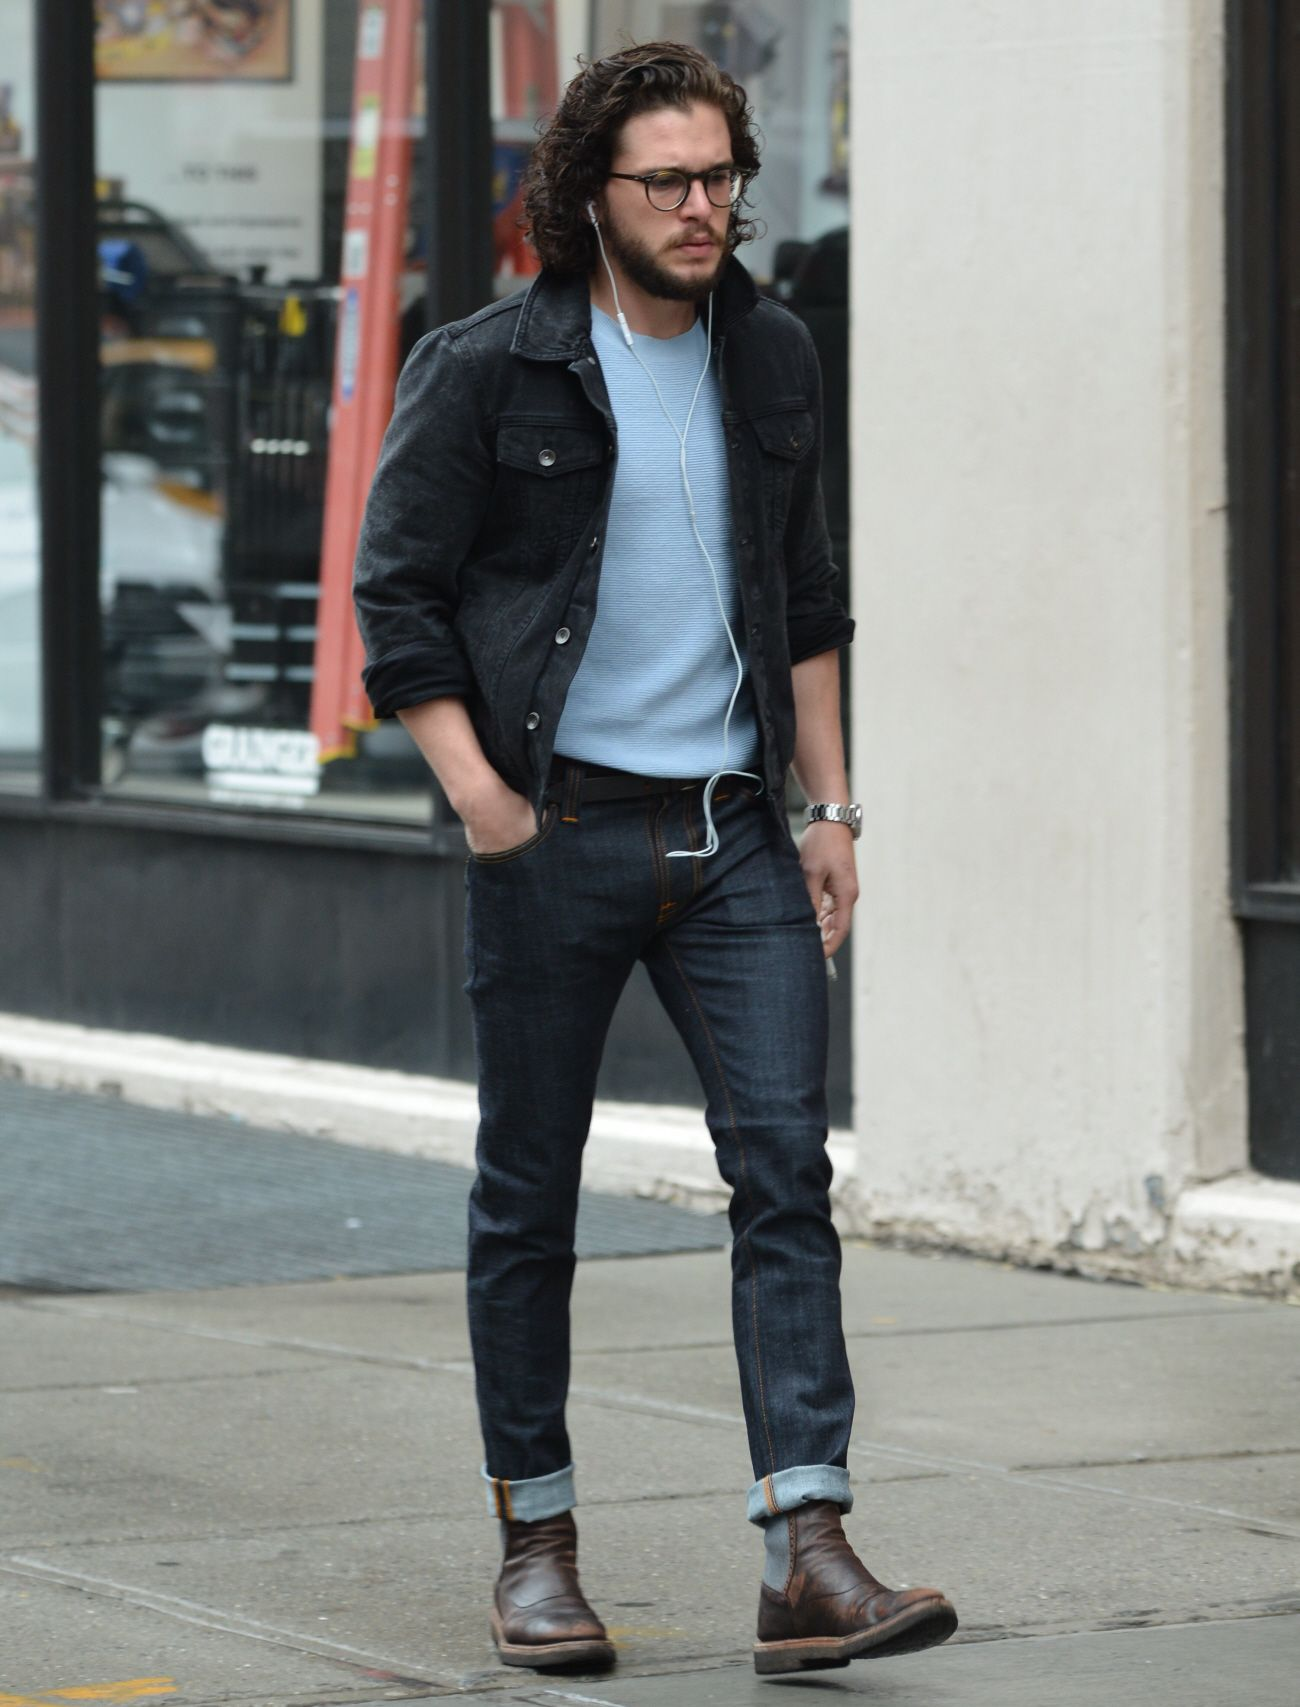 Black t shirt navy jeans - Kit Harington Wearing Black Denim Jacket Light Blue Crew Neck T Shirt Navy Jeans Dark Brown Leather Chelsea Boots